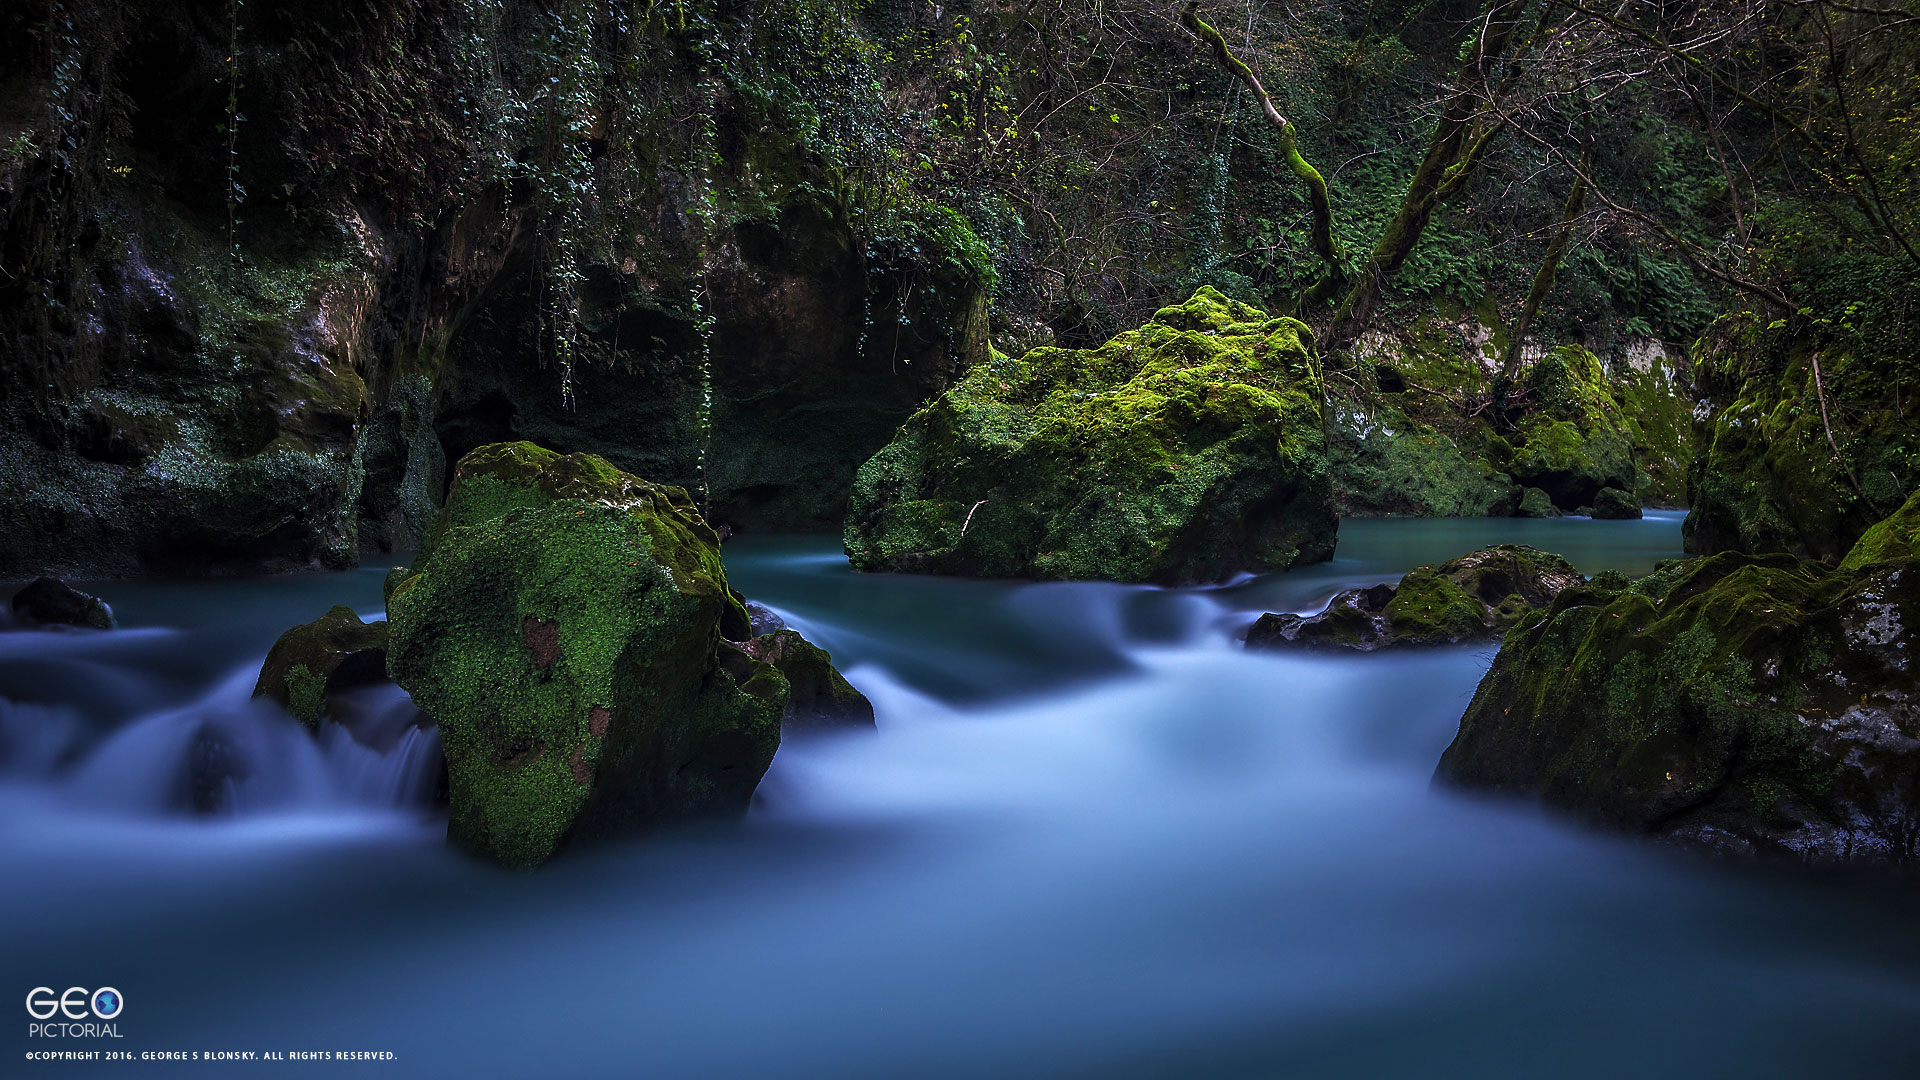 long exposure photography at a special and secret location during our landscape photography workshop to meteroa & western Pindos